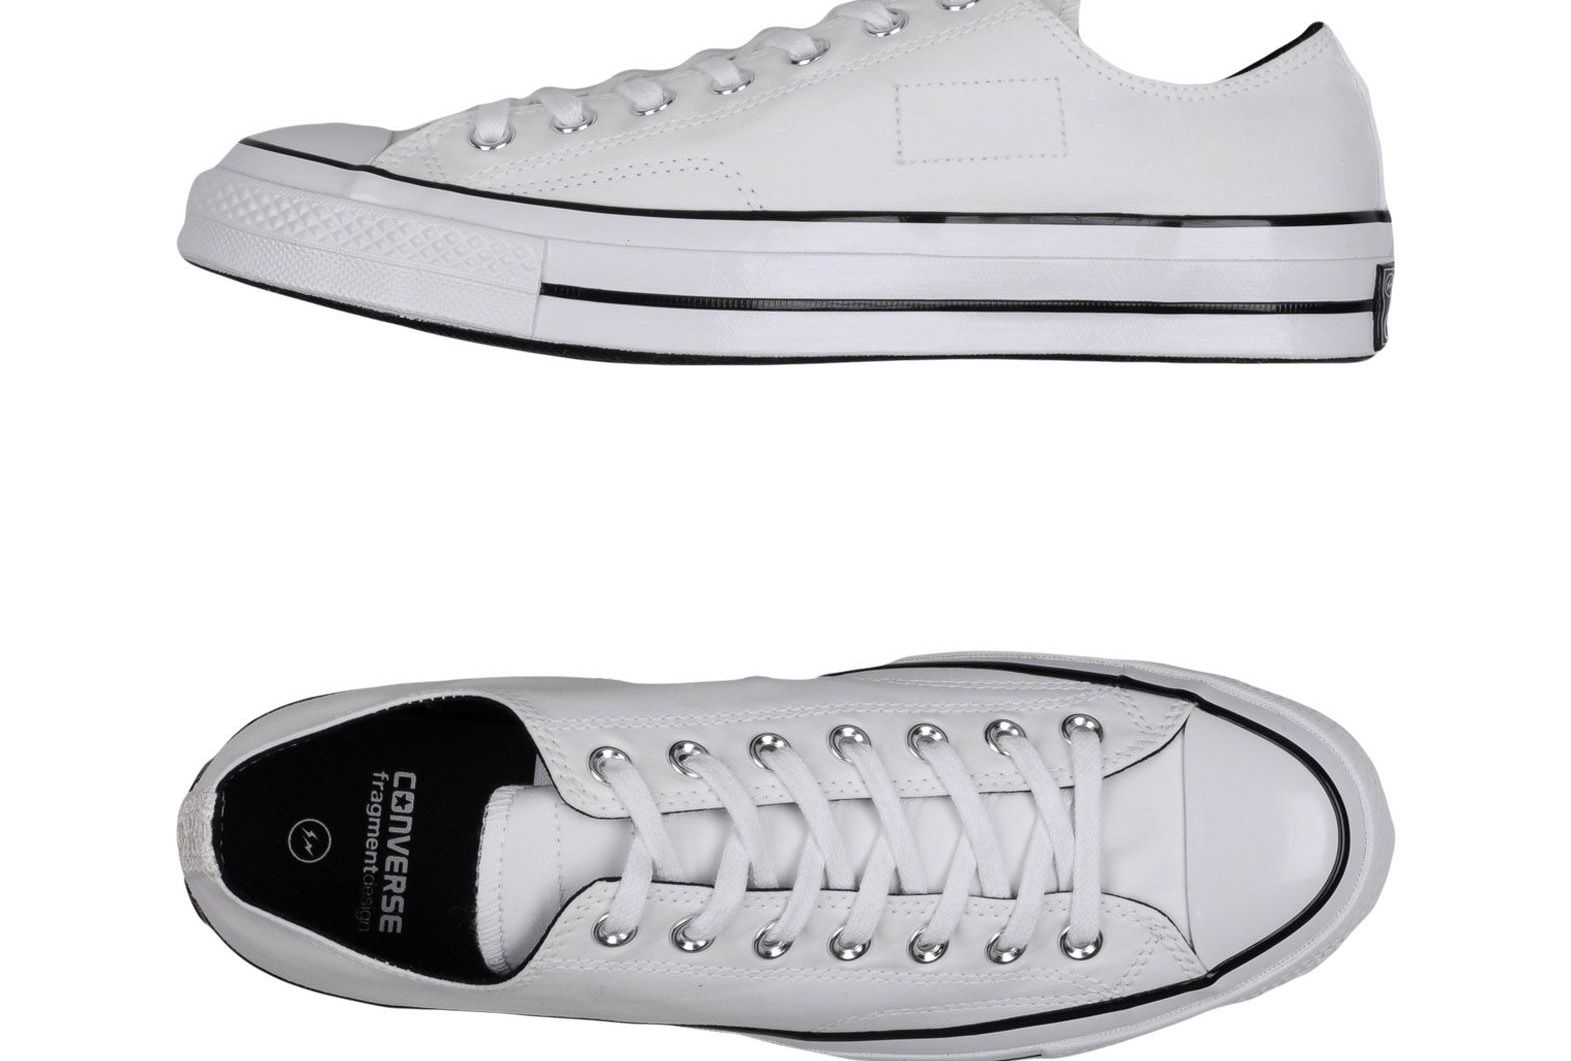 CONVERSE ALL STAR CHUCK TAYLOR II ΠΑΠΟΥΤΣΙΑ Παπούτσια τένις χαμηλά